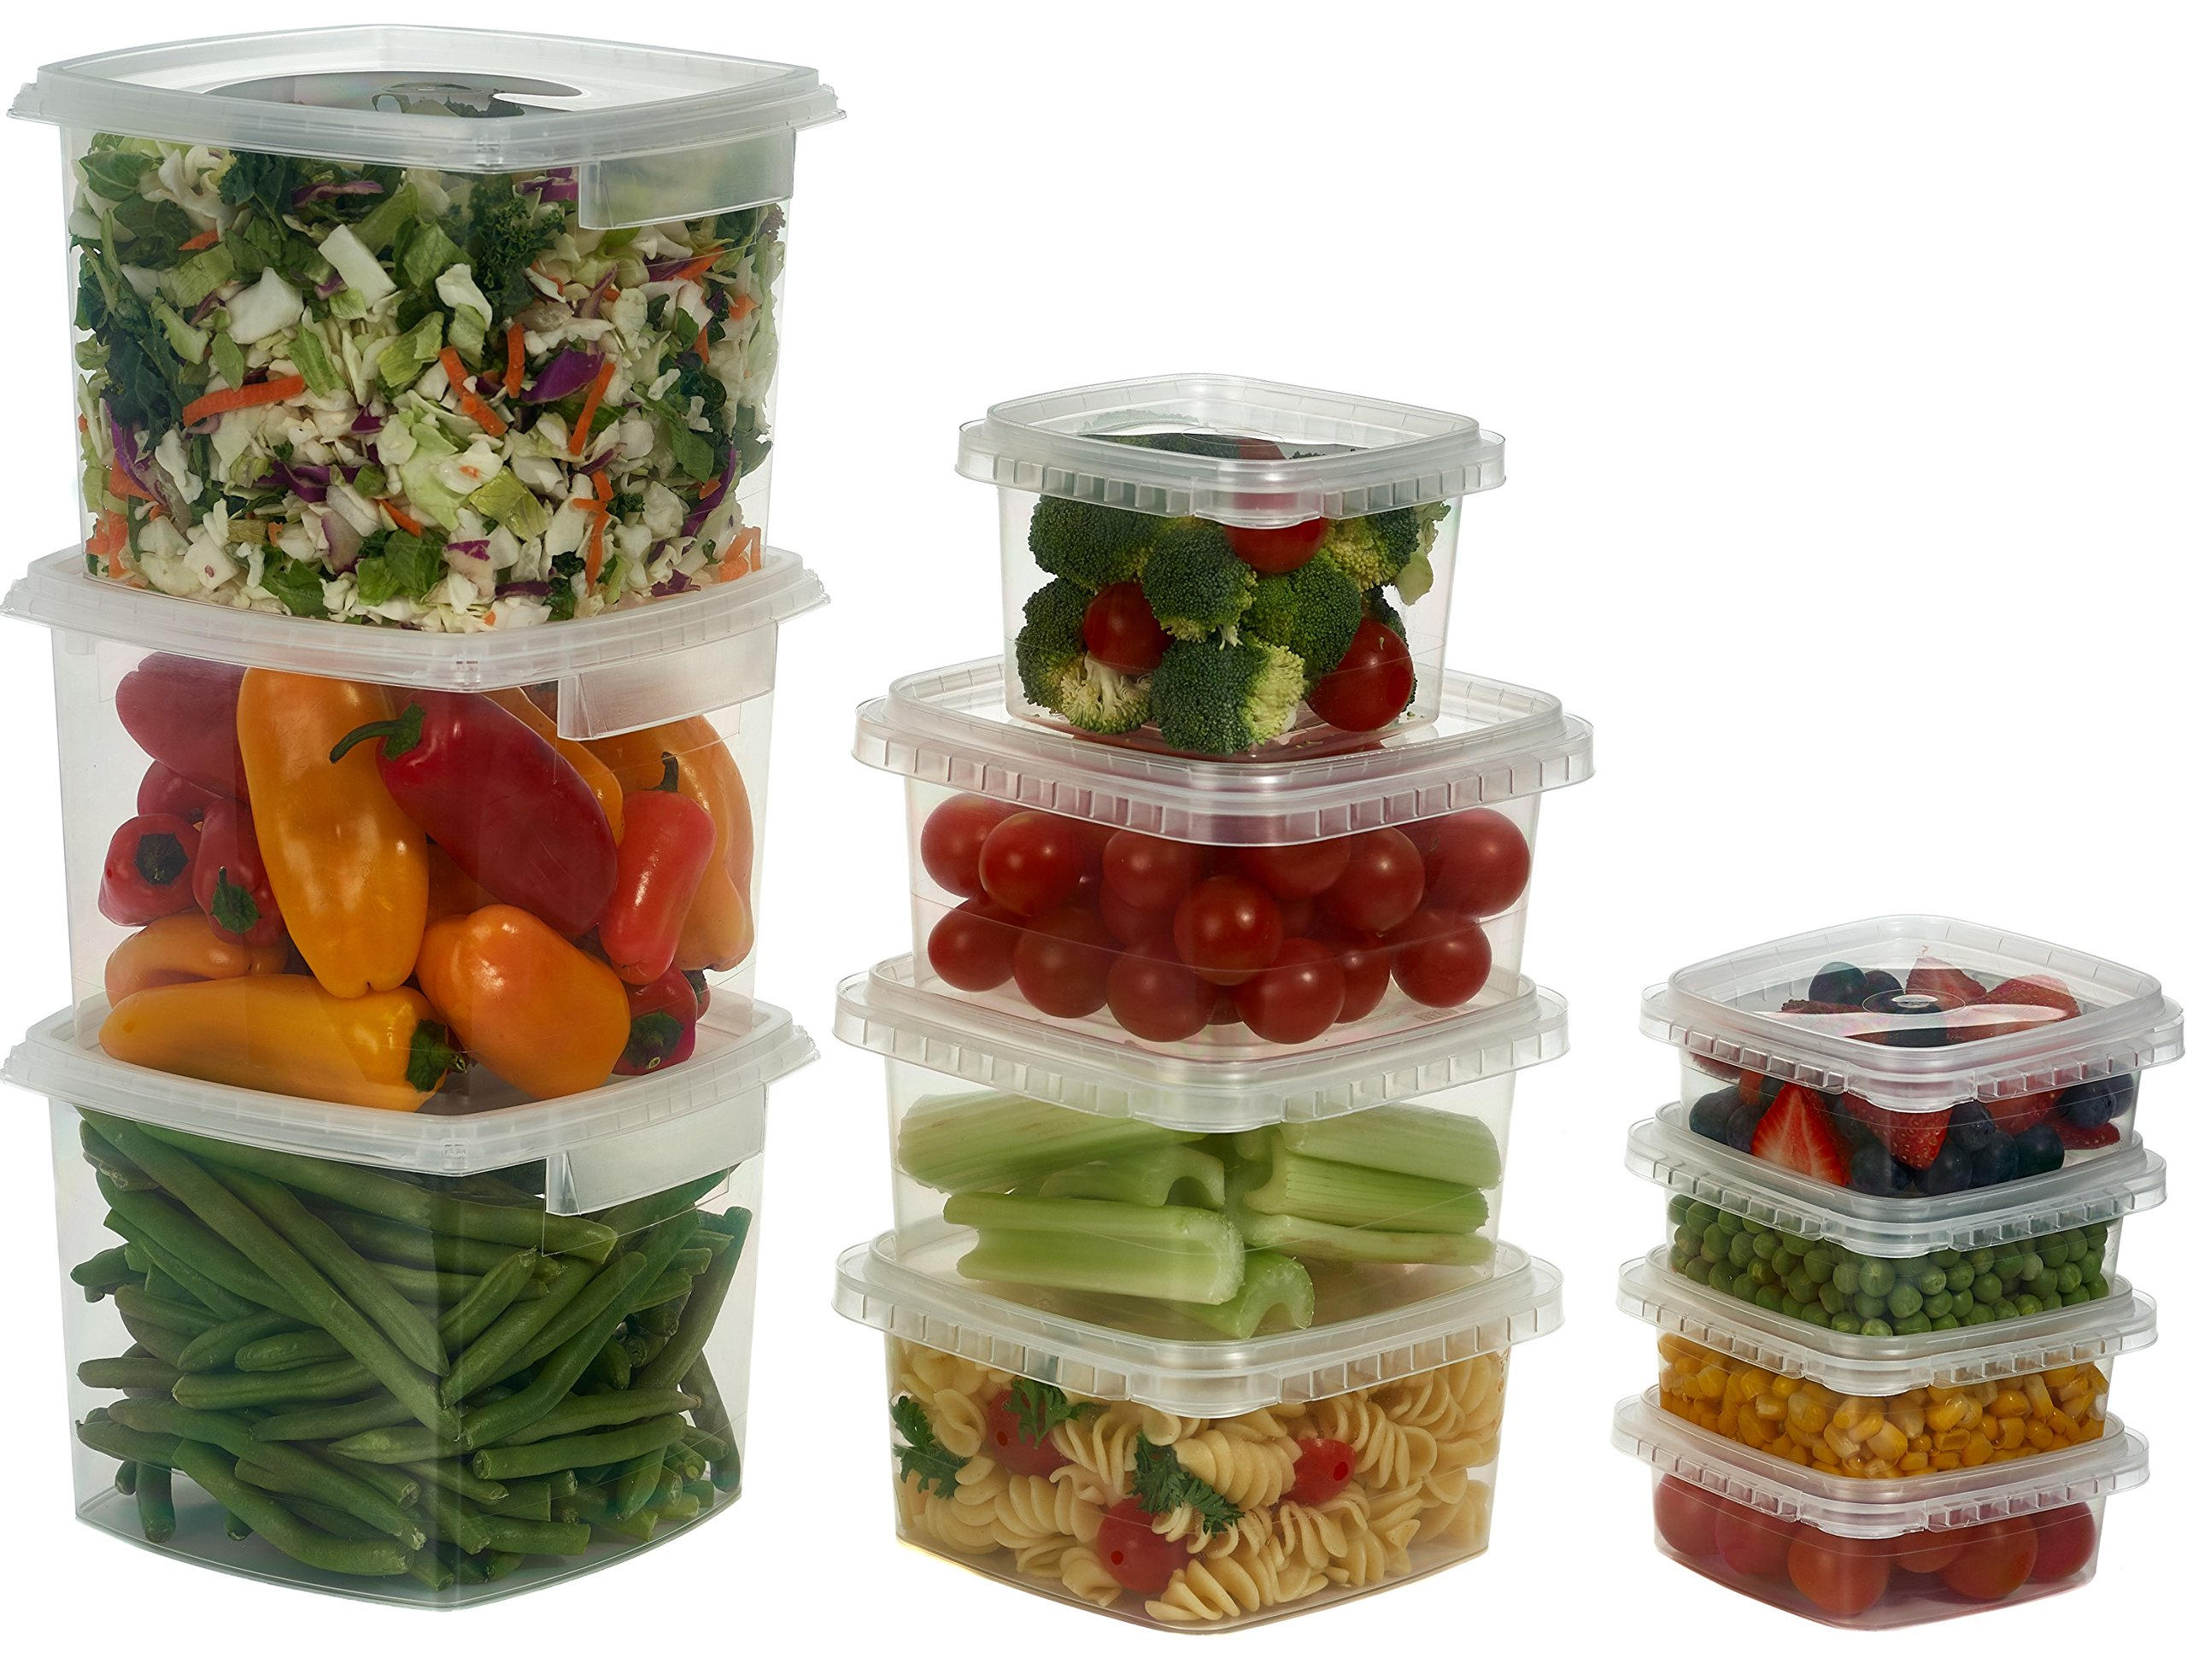 Decony Deli Food Storage Containers with Lids Temper Evident Leak-Proof Ultra Clear Square Space Saver and Stackable Shape Microwavable and Freezable and Dishwasher Safe, 64 oz, Set of 10